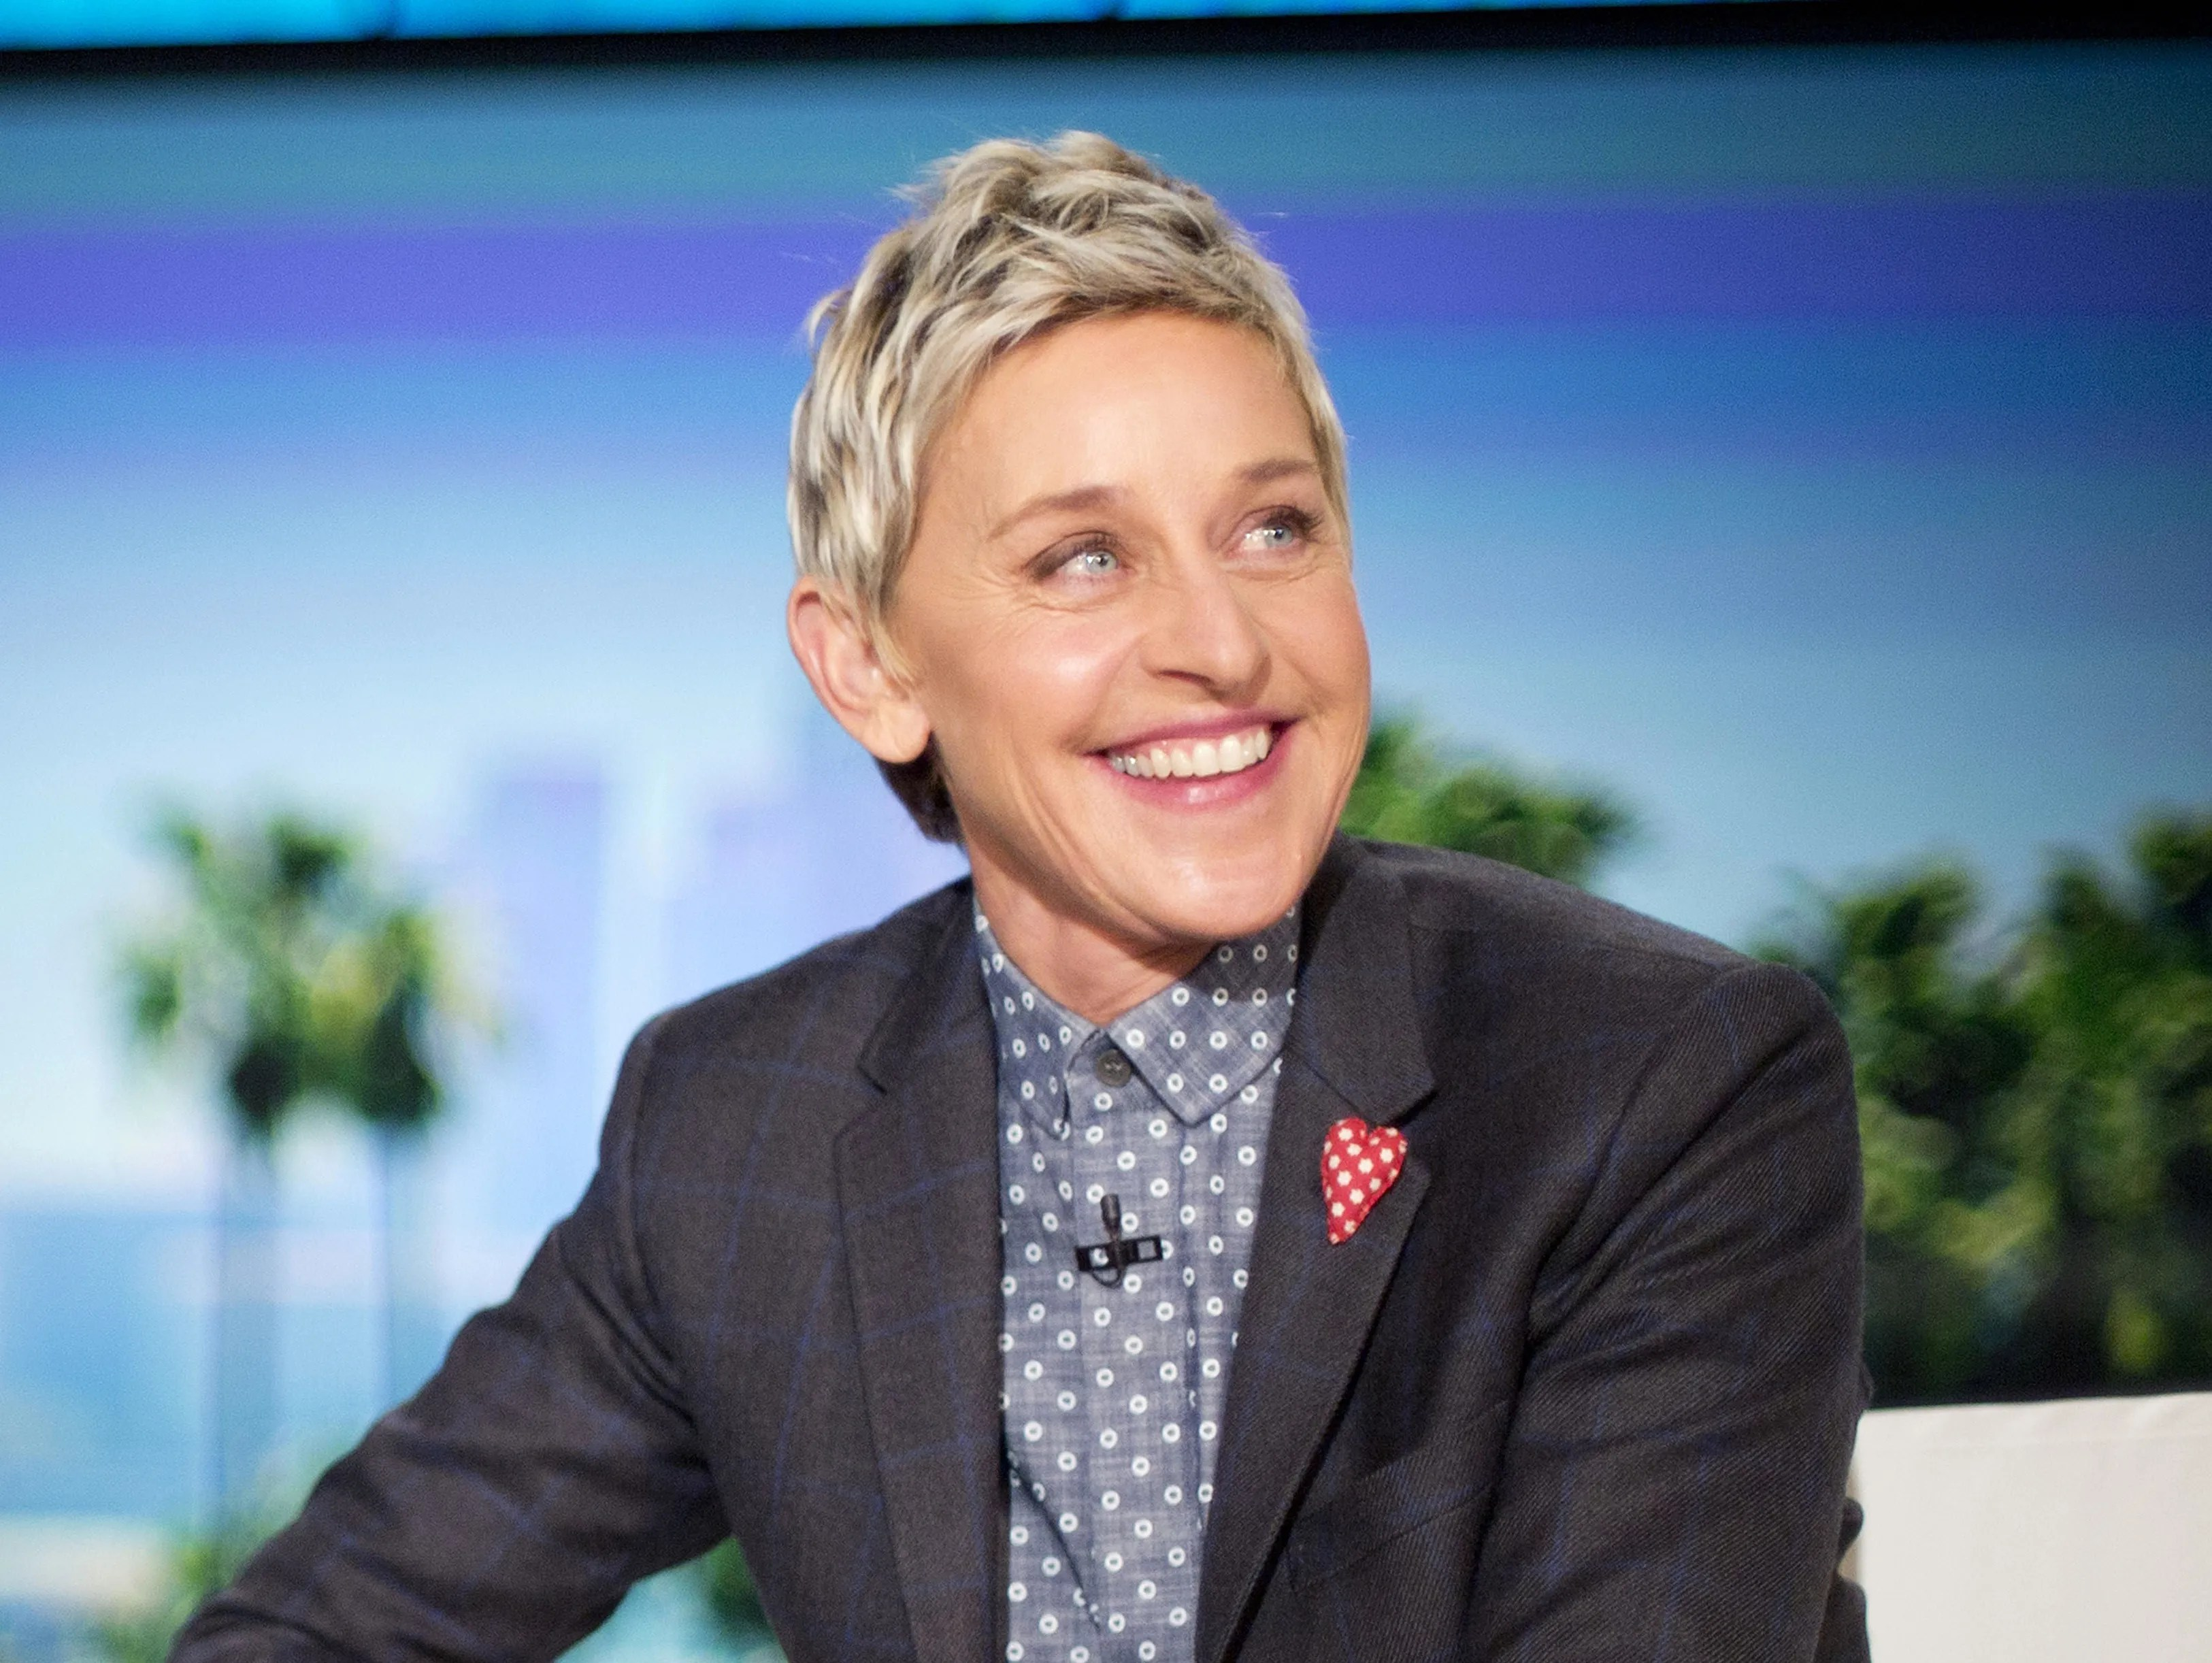 Ellen Degeneres Stepfather Groped Me Tried To Break Into